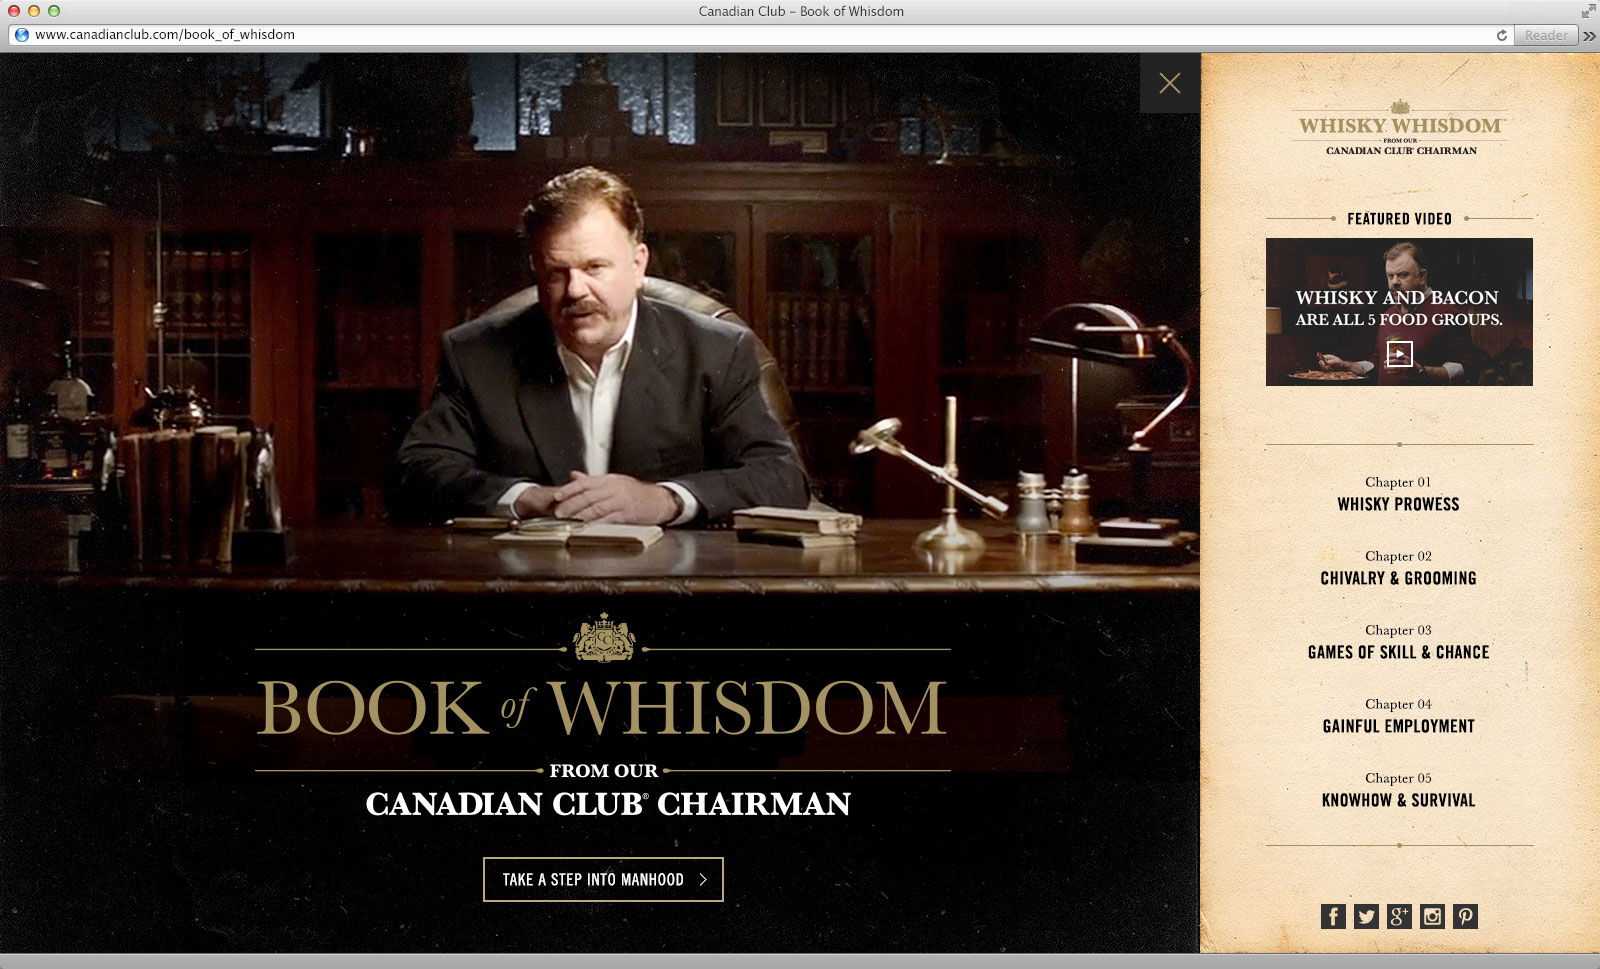 CanadianClub_WhiskeyWhisdom_Desktop_BLB_001f